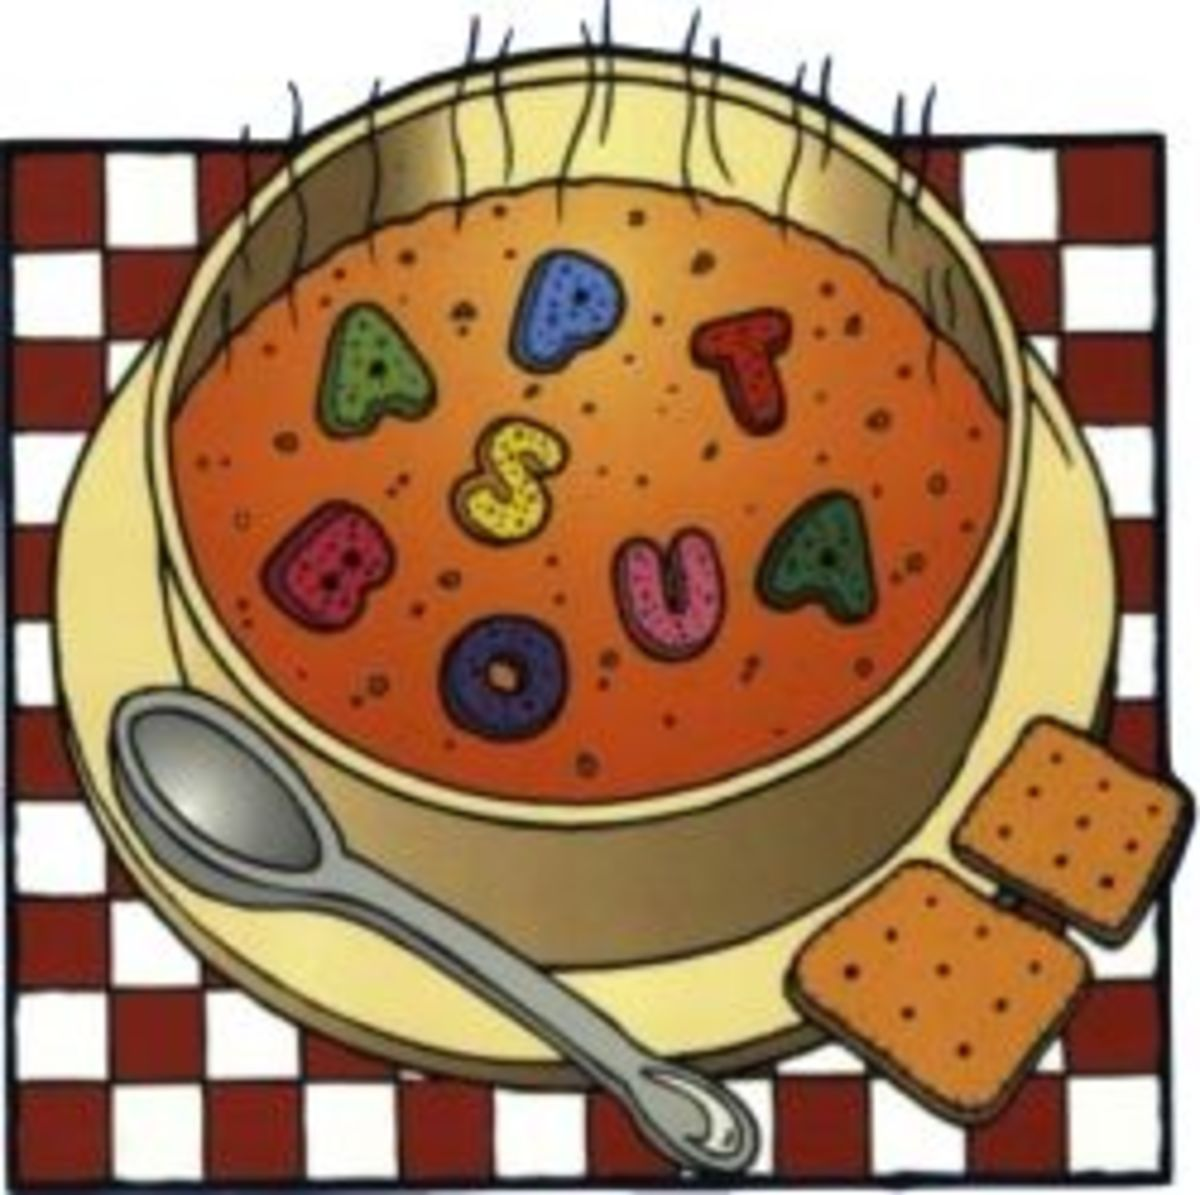 Photo is a detail from Alphabet Soup: Language Arts Enrichment Activities, available below.